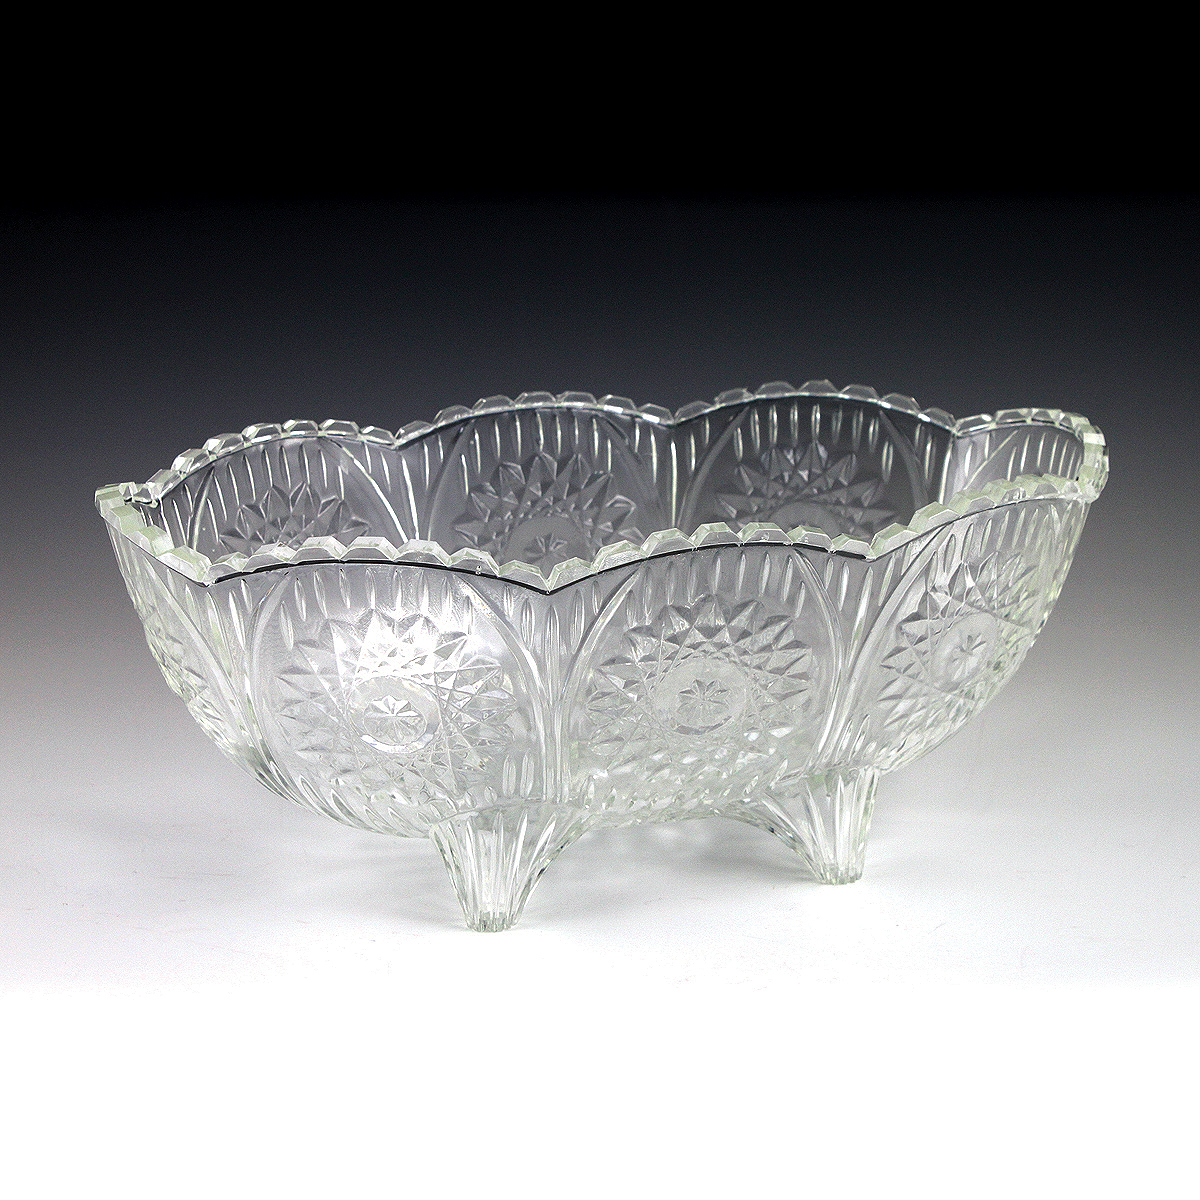 2 5 Qt Crystalware Oval Crystal Cut Footed Bowl Plastic